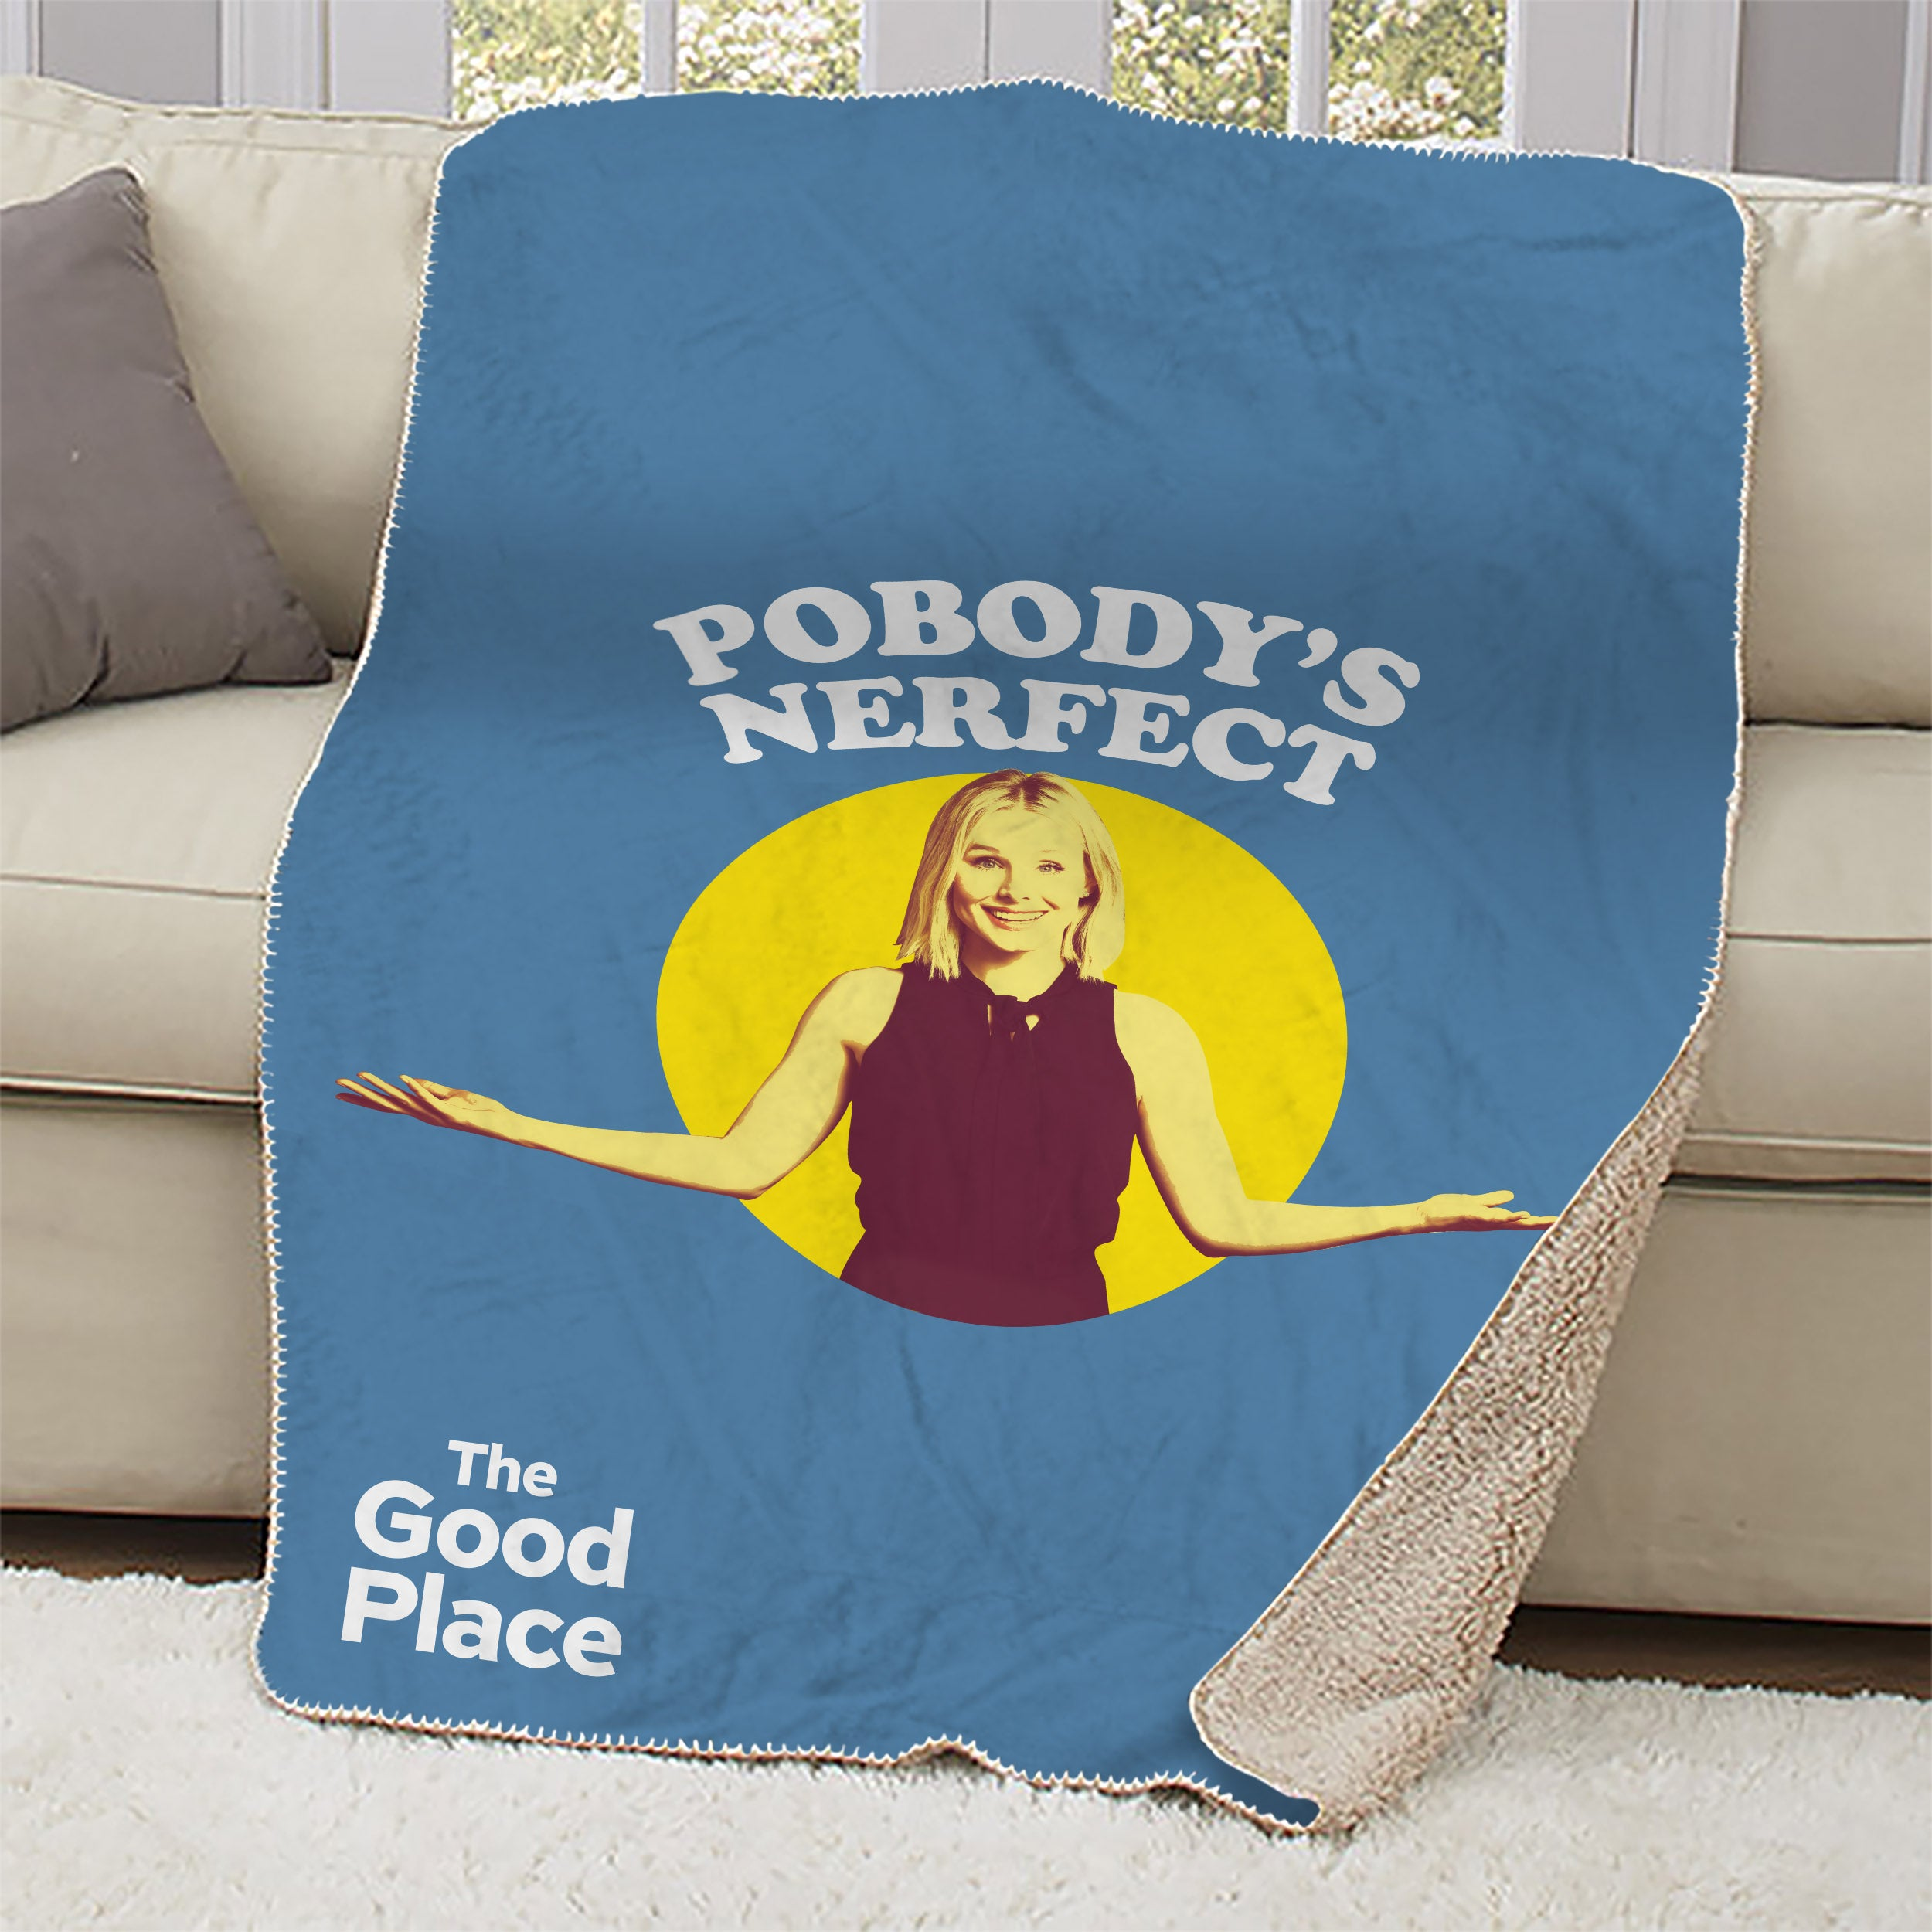 The Good Place Pobody's Nerfect Sherpa Blanket